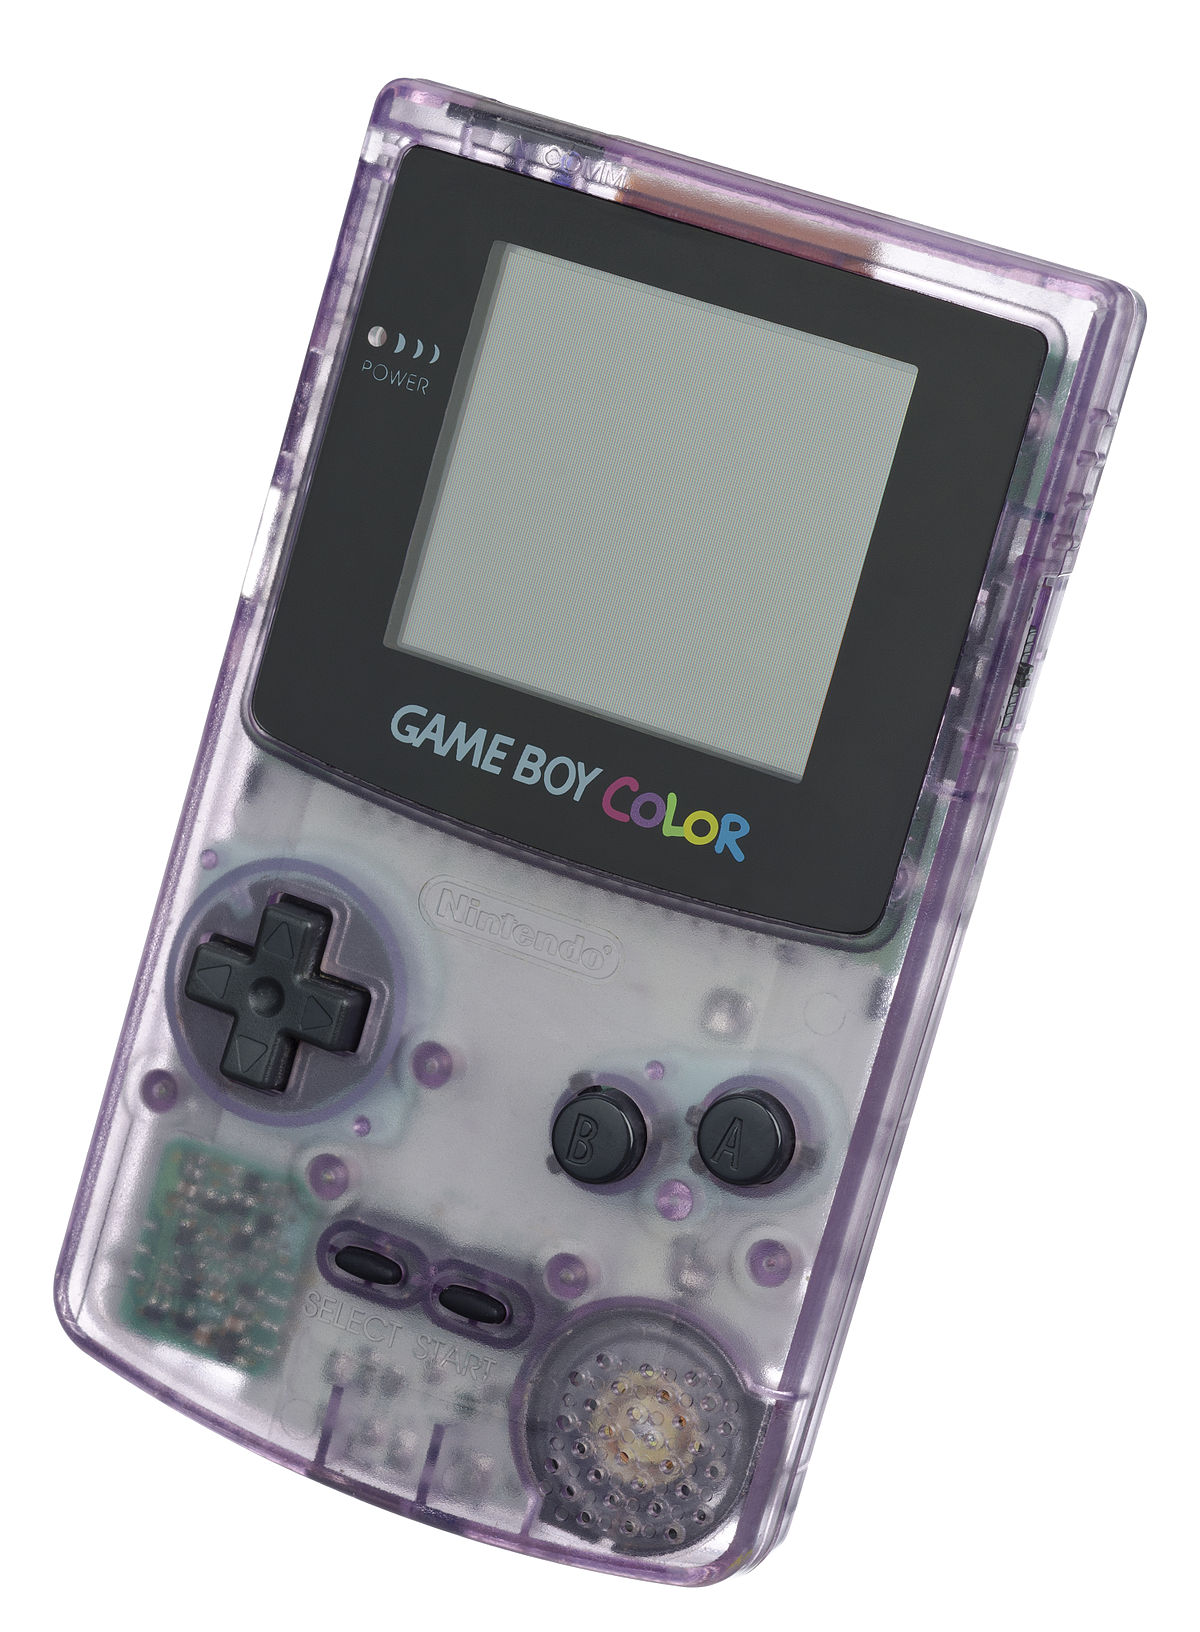 prix gameboy color